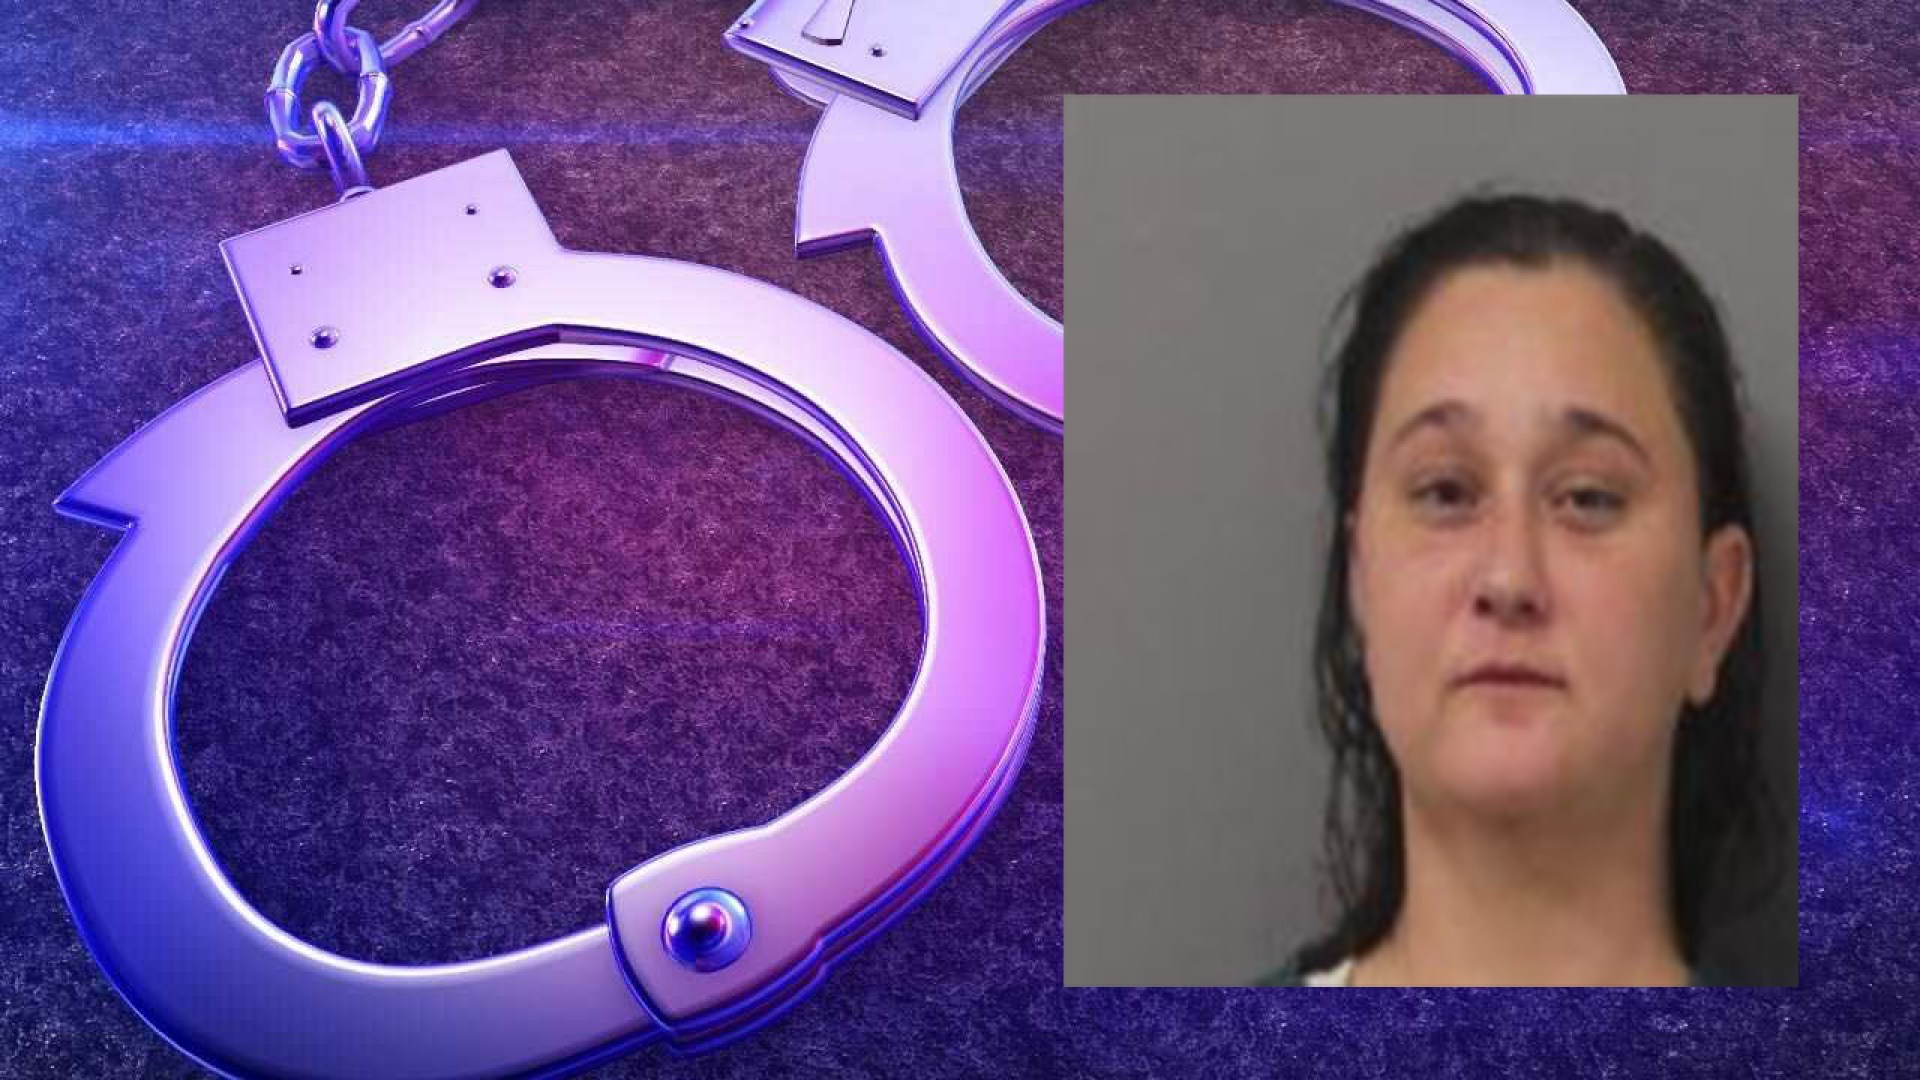 Campbell woman made threats with a weapon during domestic